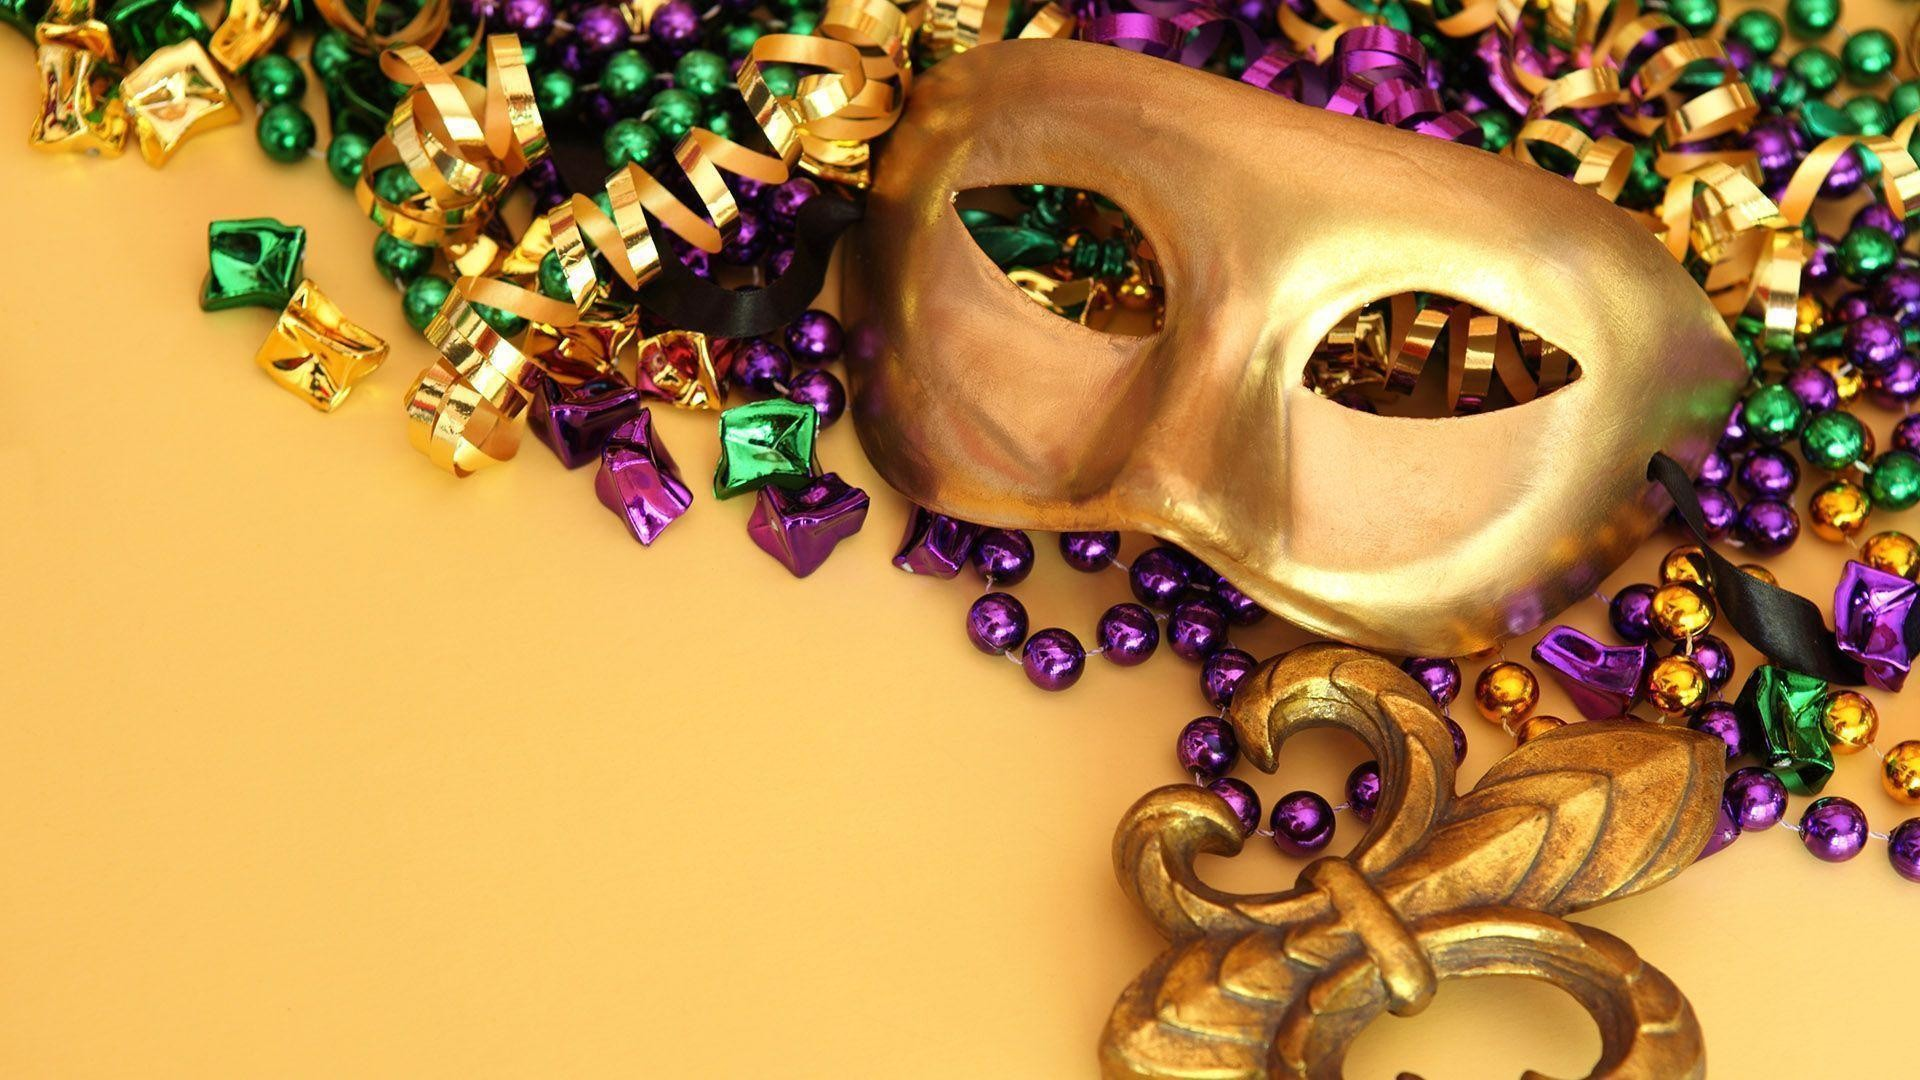 1920x1080 Mardi Gras Desktop Wallpaper 27889